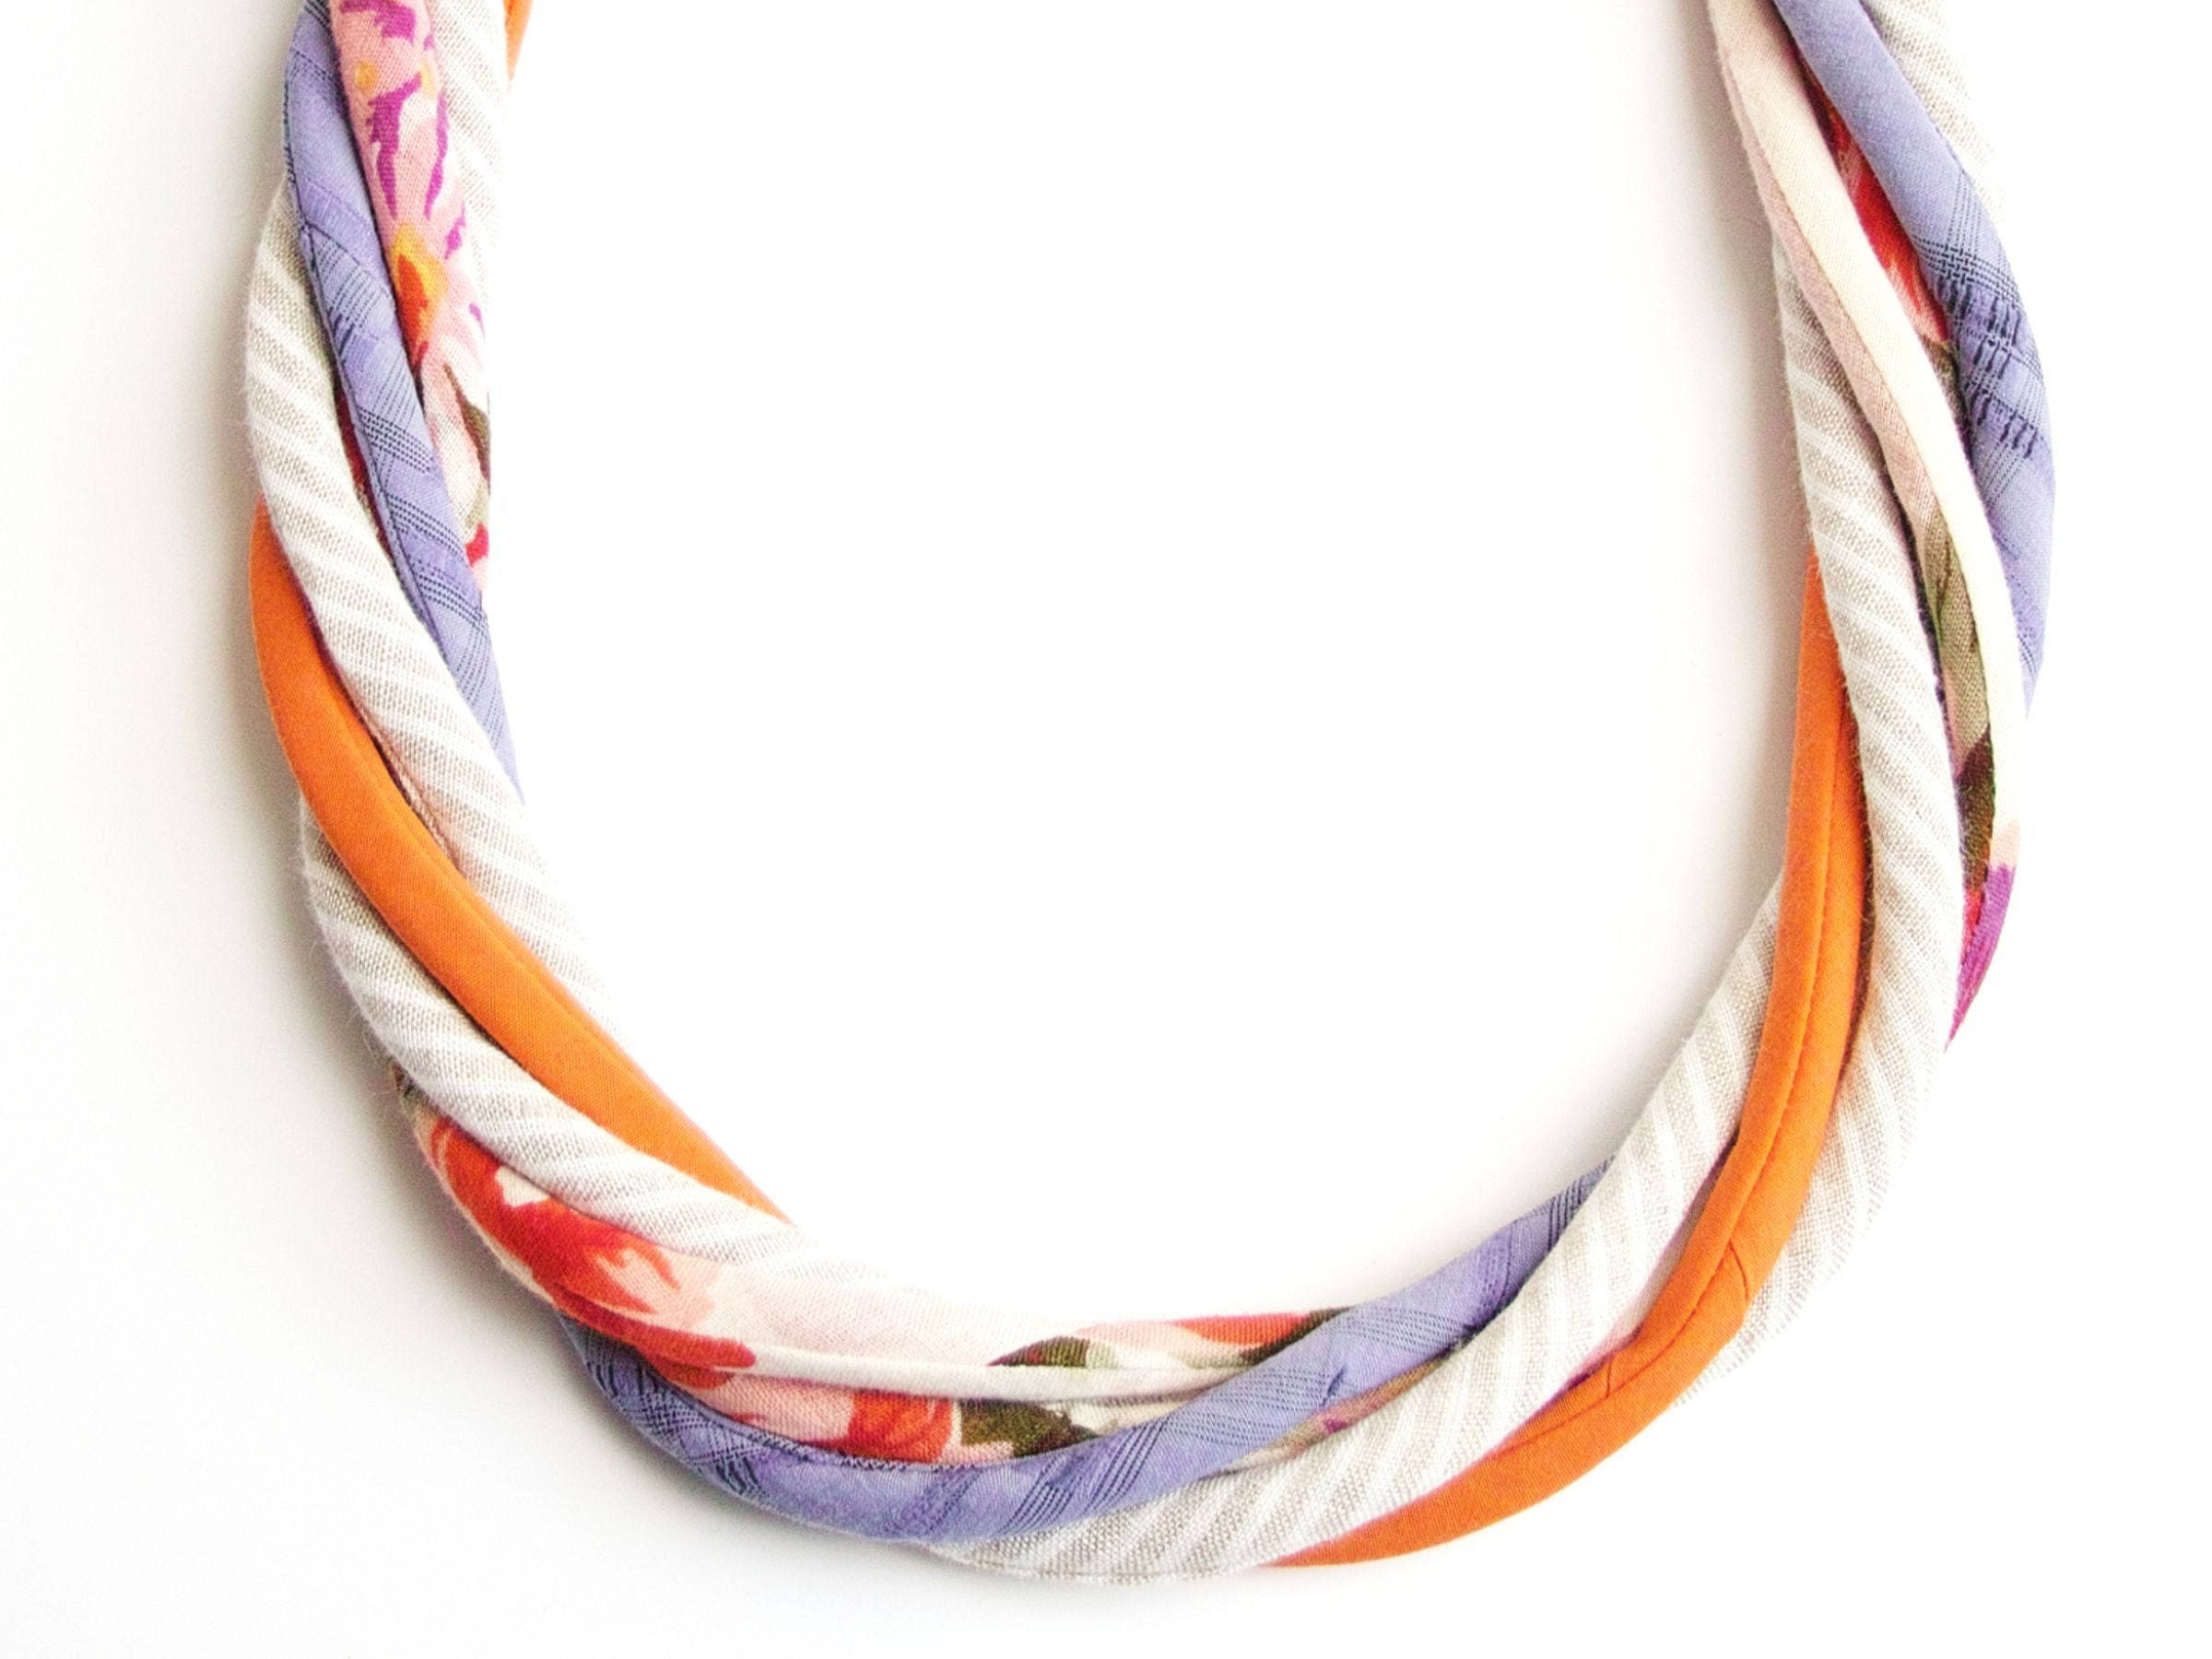 view photo on from necklace stock and white glass isolated of batik top background pink bone beads textile silk